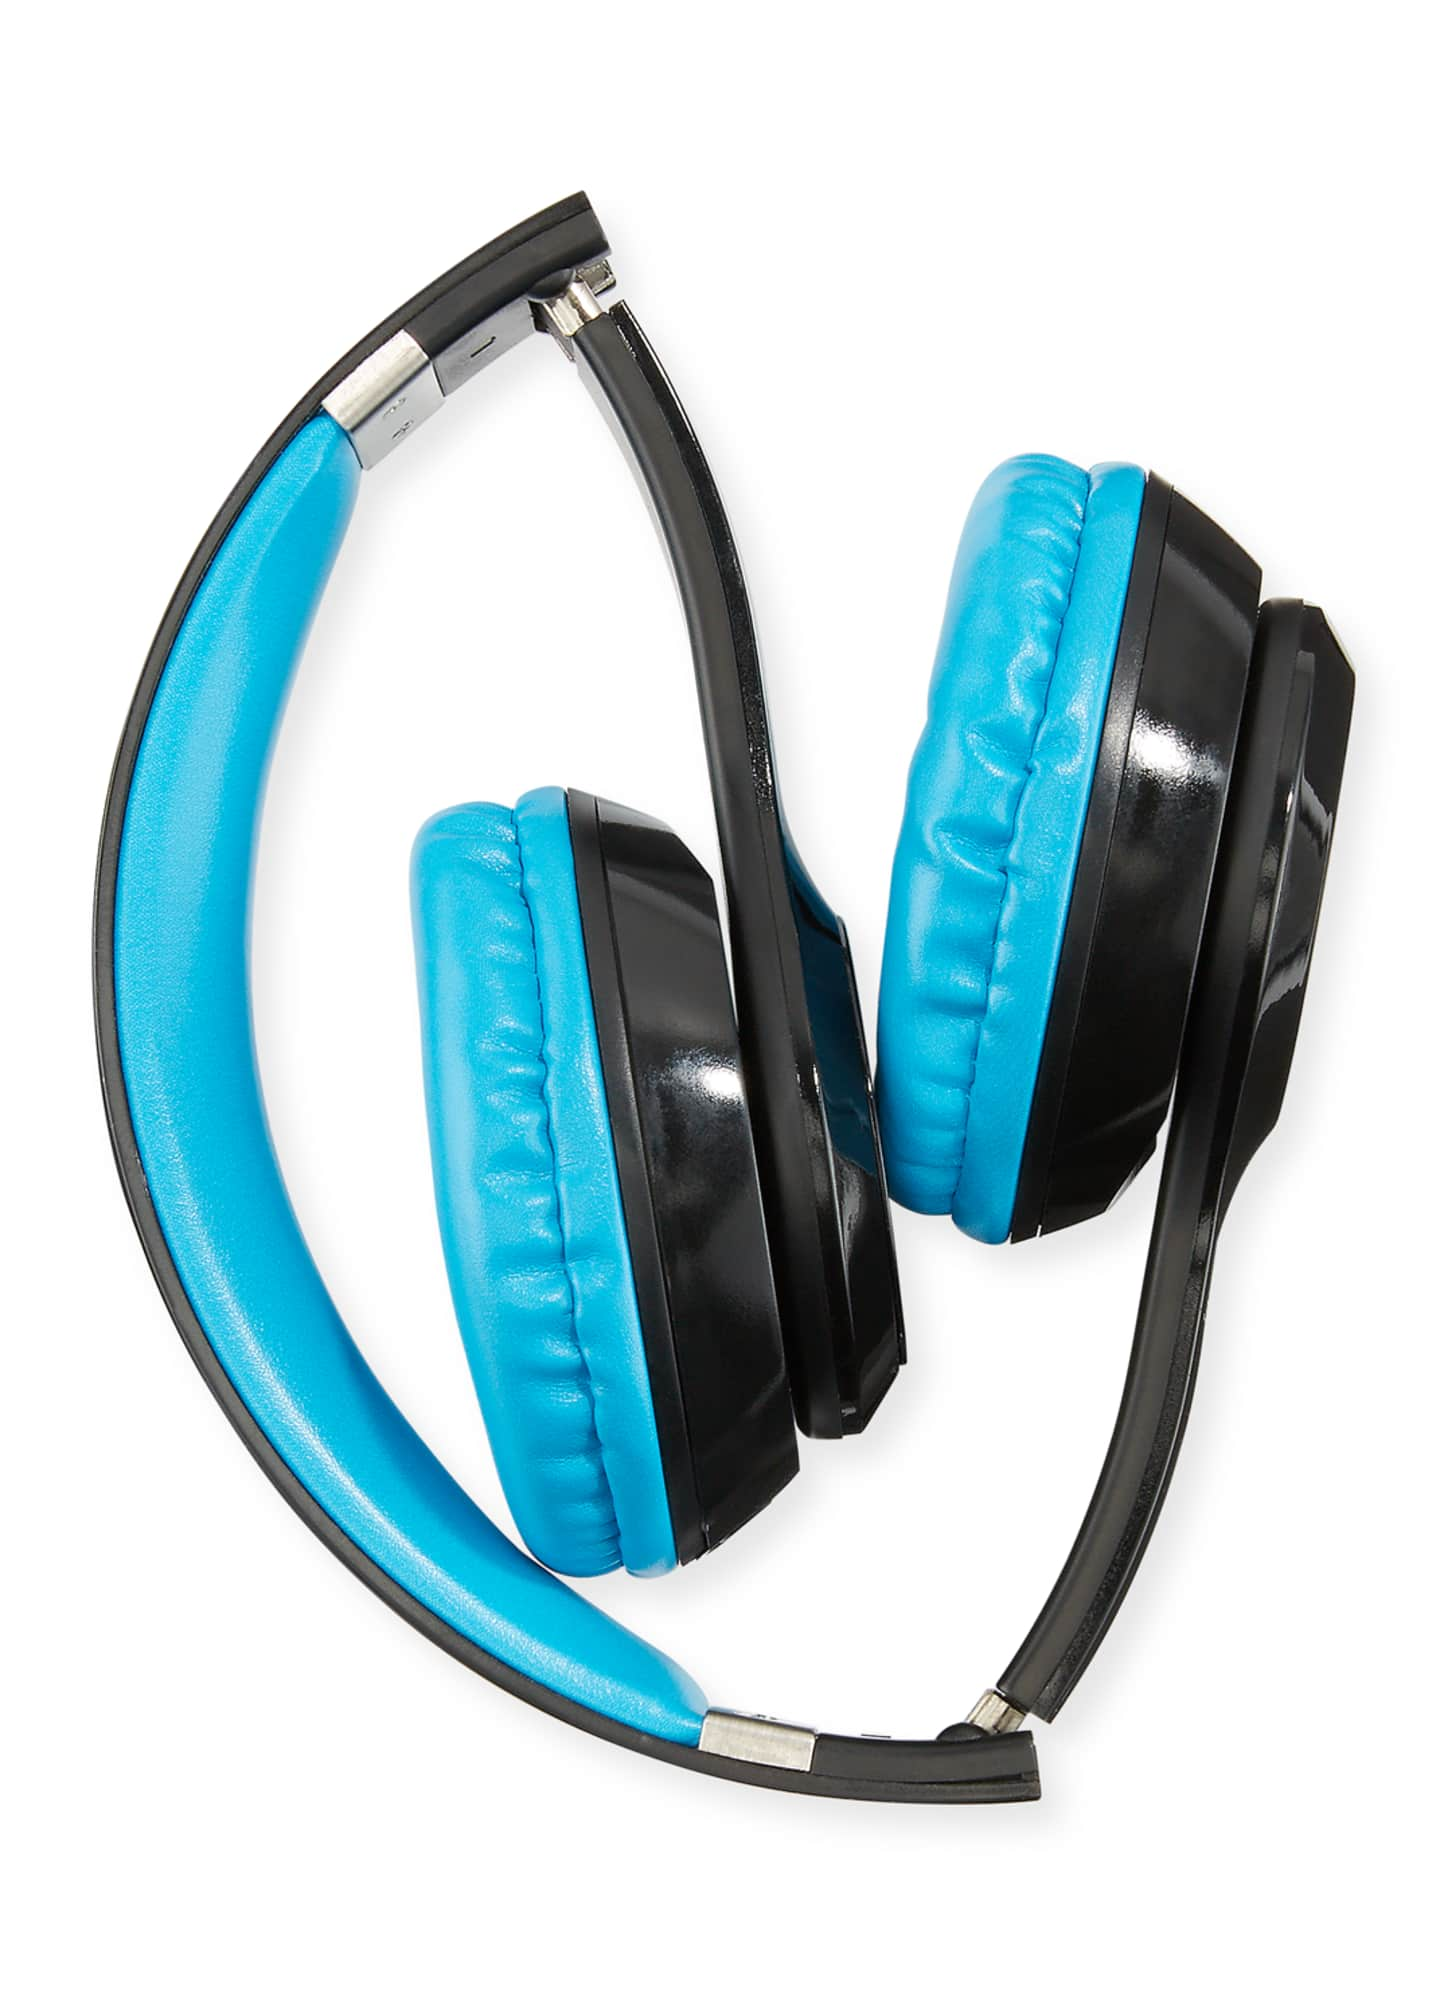 Image 2 of 2: Kids' Stereo Bluetooth On-Ear Headphones with Mic